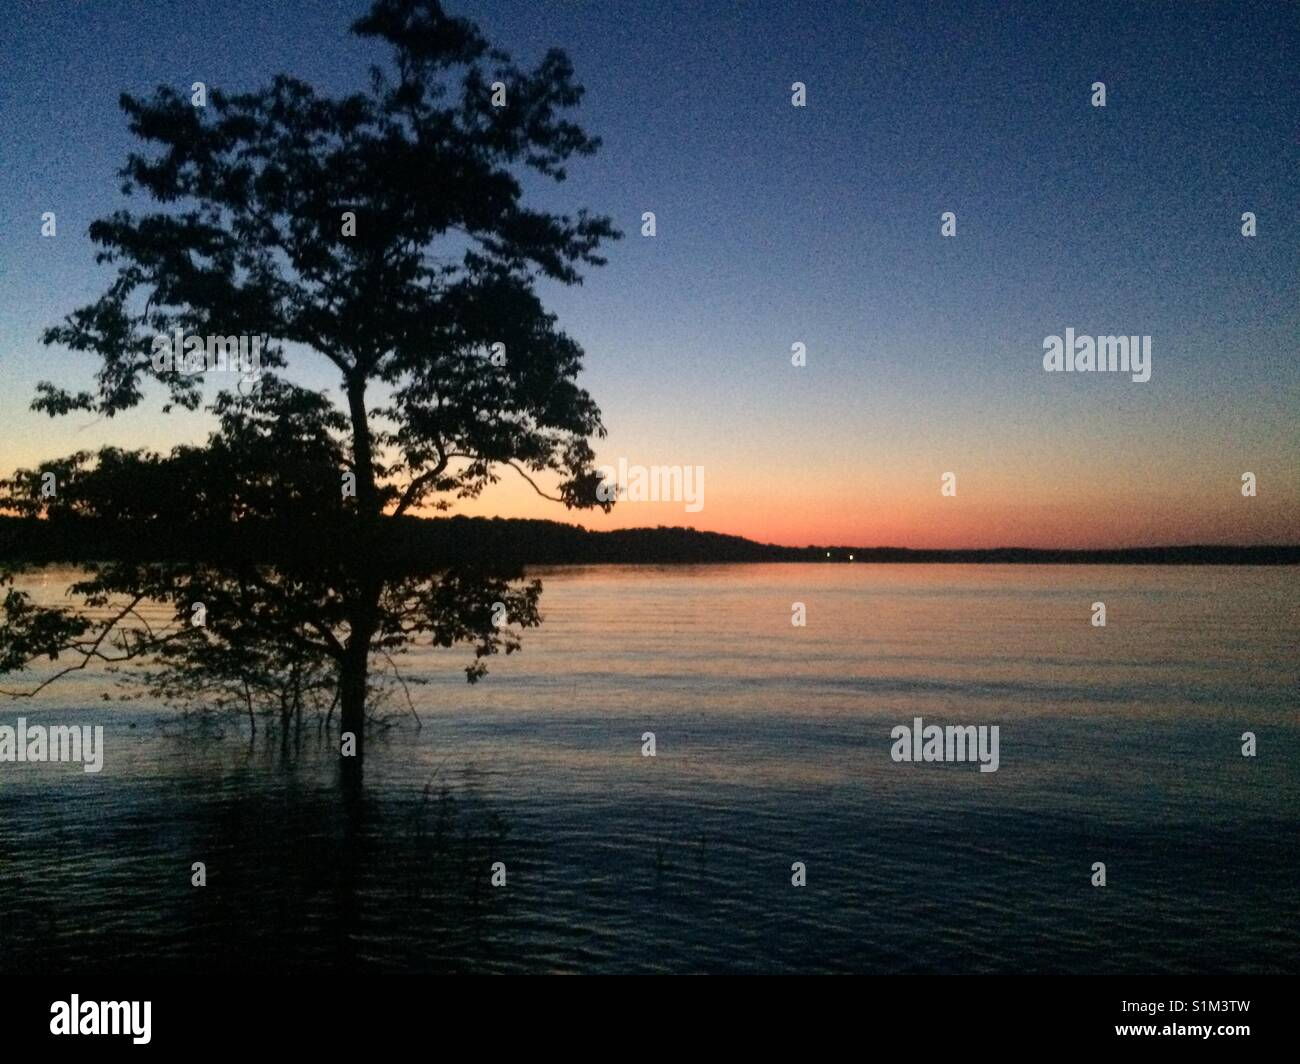 A nice peaceful photo of a flooded lake, with a nice tree and a beautiful sunset. Just looking at this picture can - Stock Image